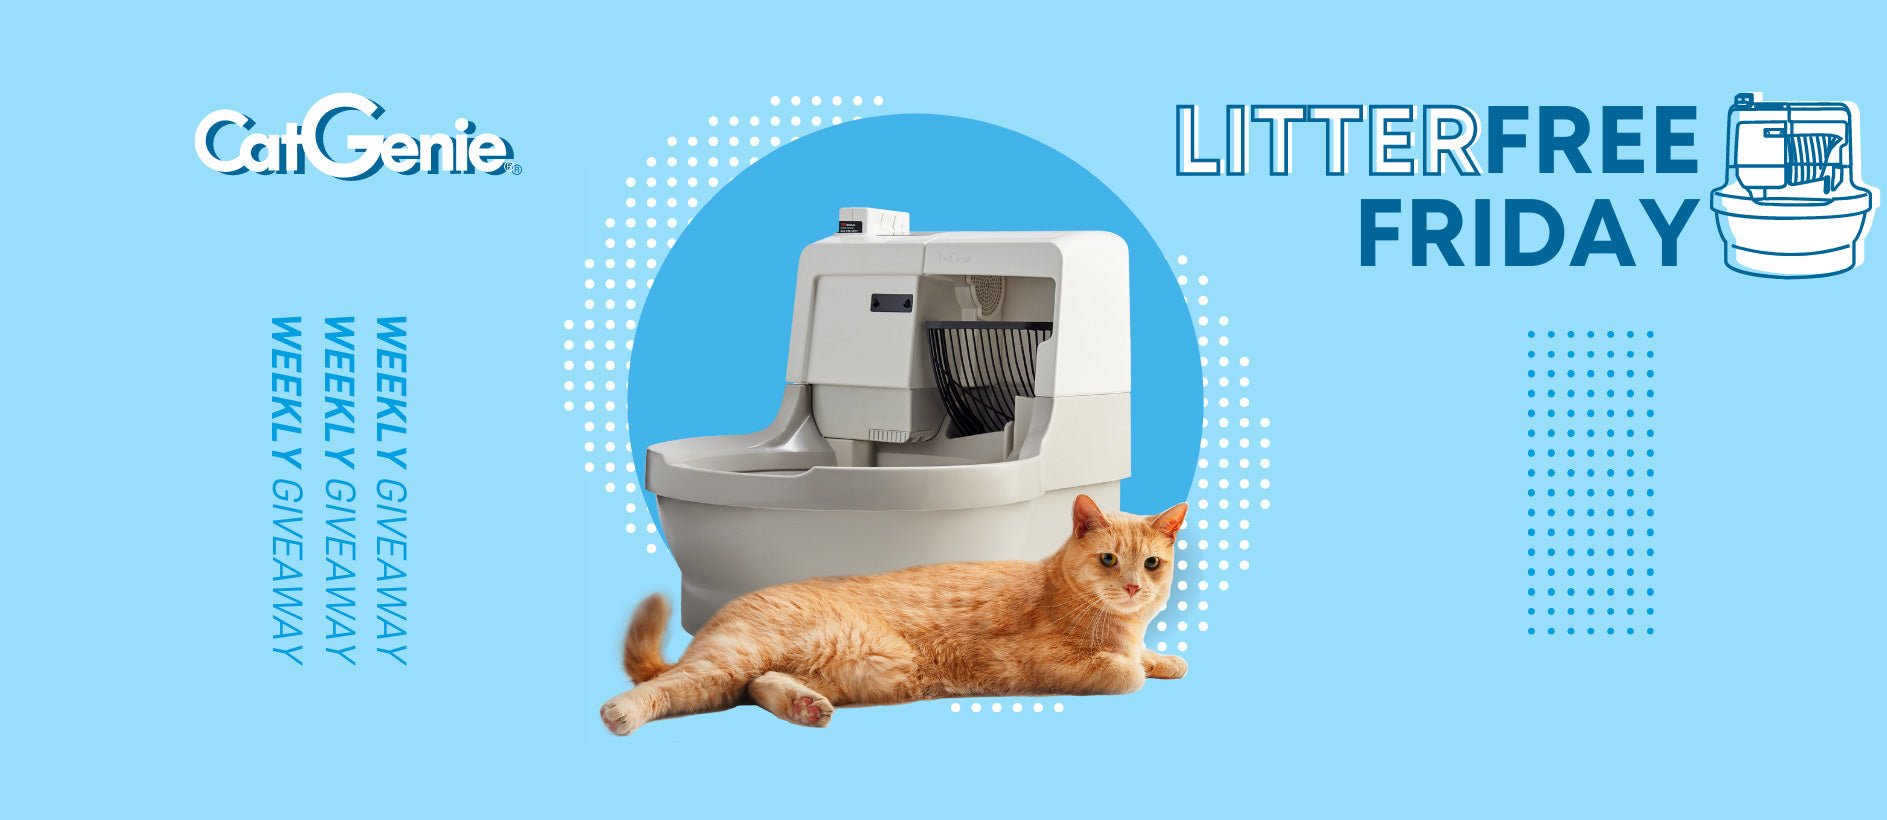 CatGenie LitterFree Friday Giveaway Every Week Win a $100 gift card for a CatGenie A.I.